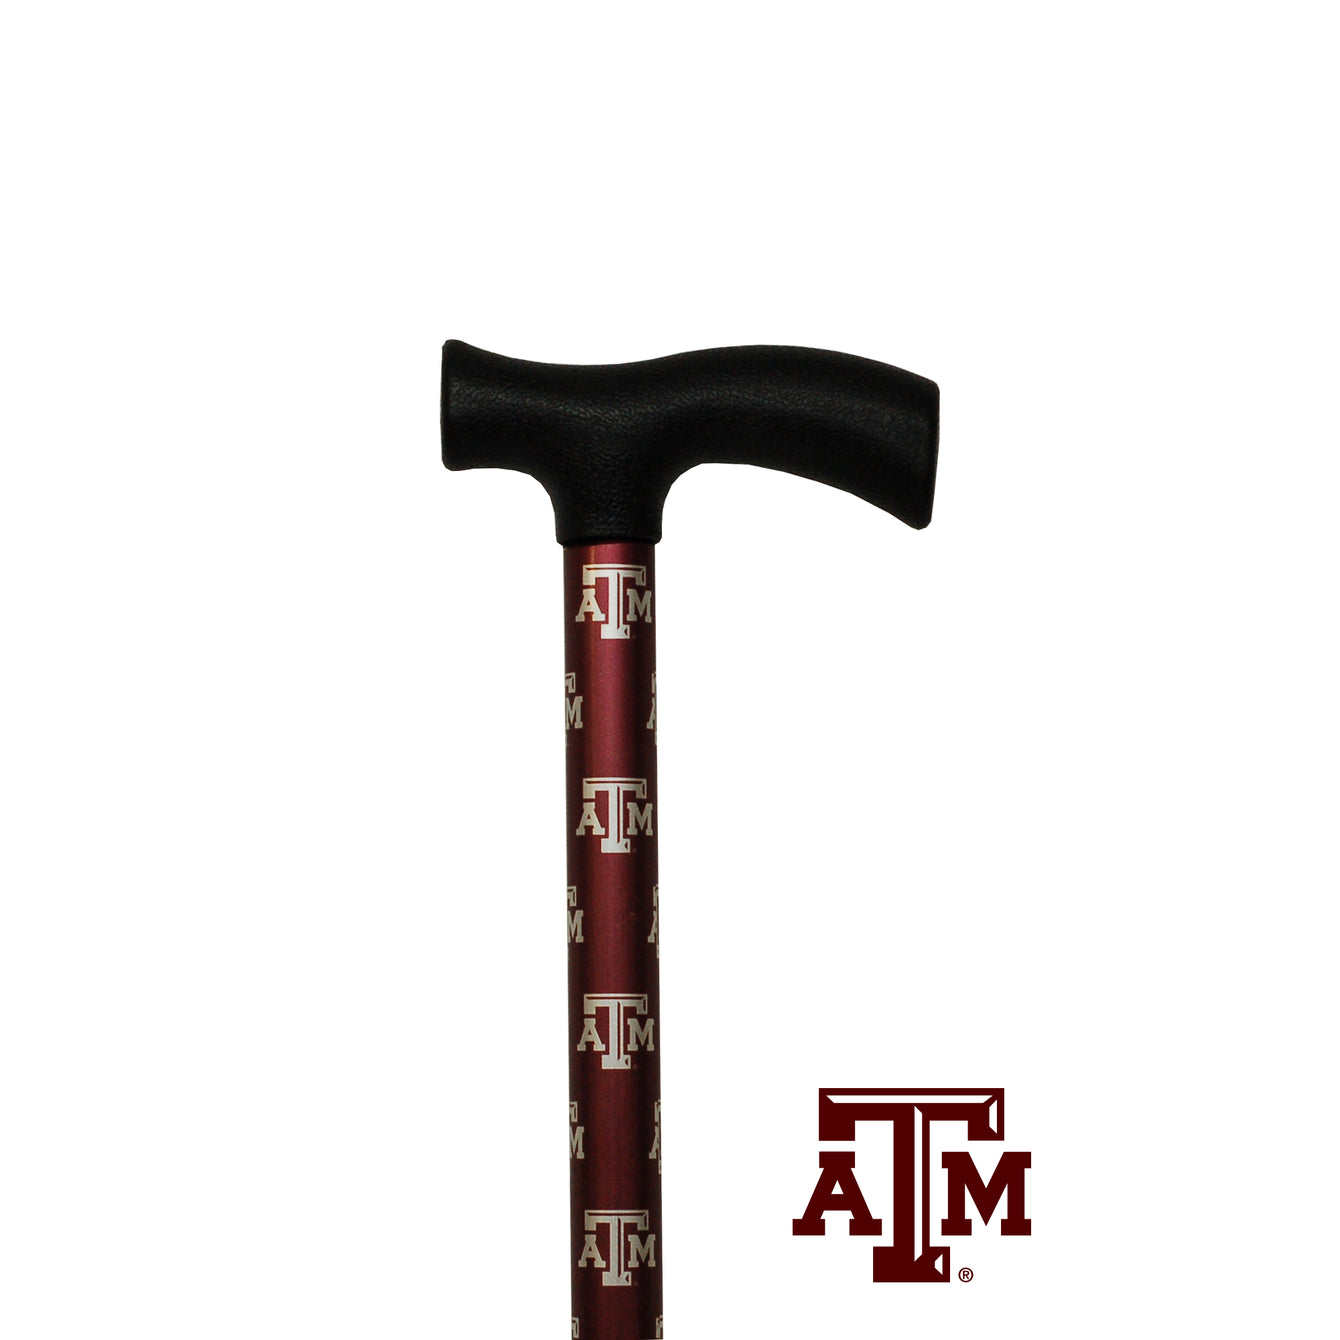 College Canes Texas A&M Aggies Adjustable Walking Cane